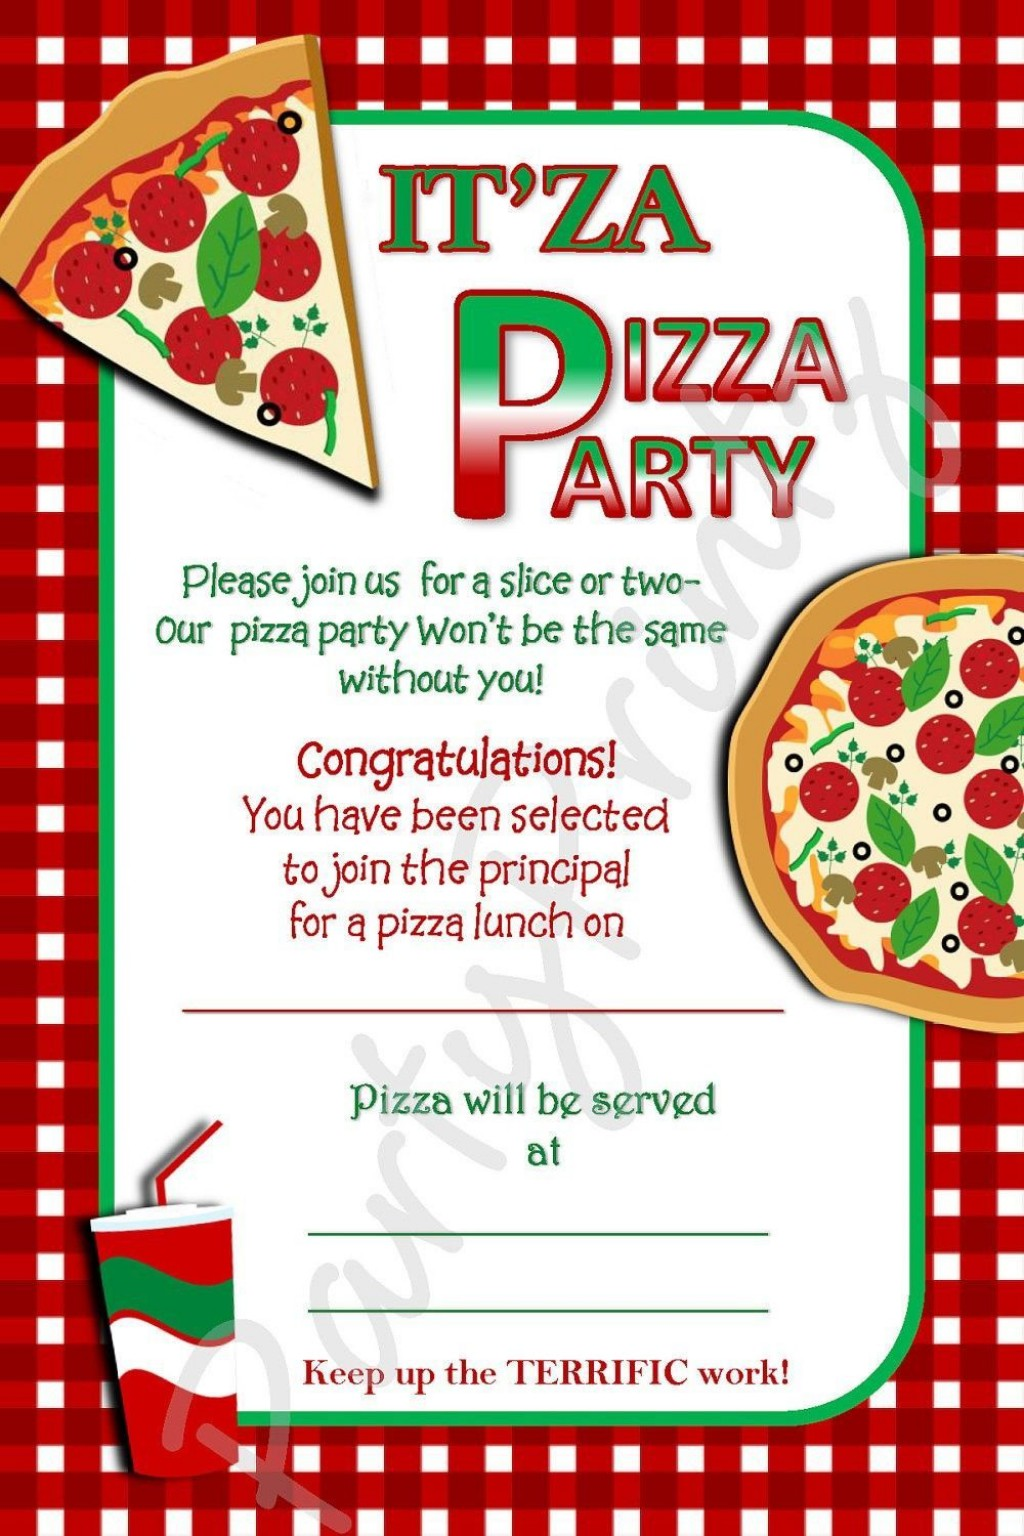 003 Impressive Pizza Party Invitation Template Free Design  PrintableLarge